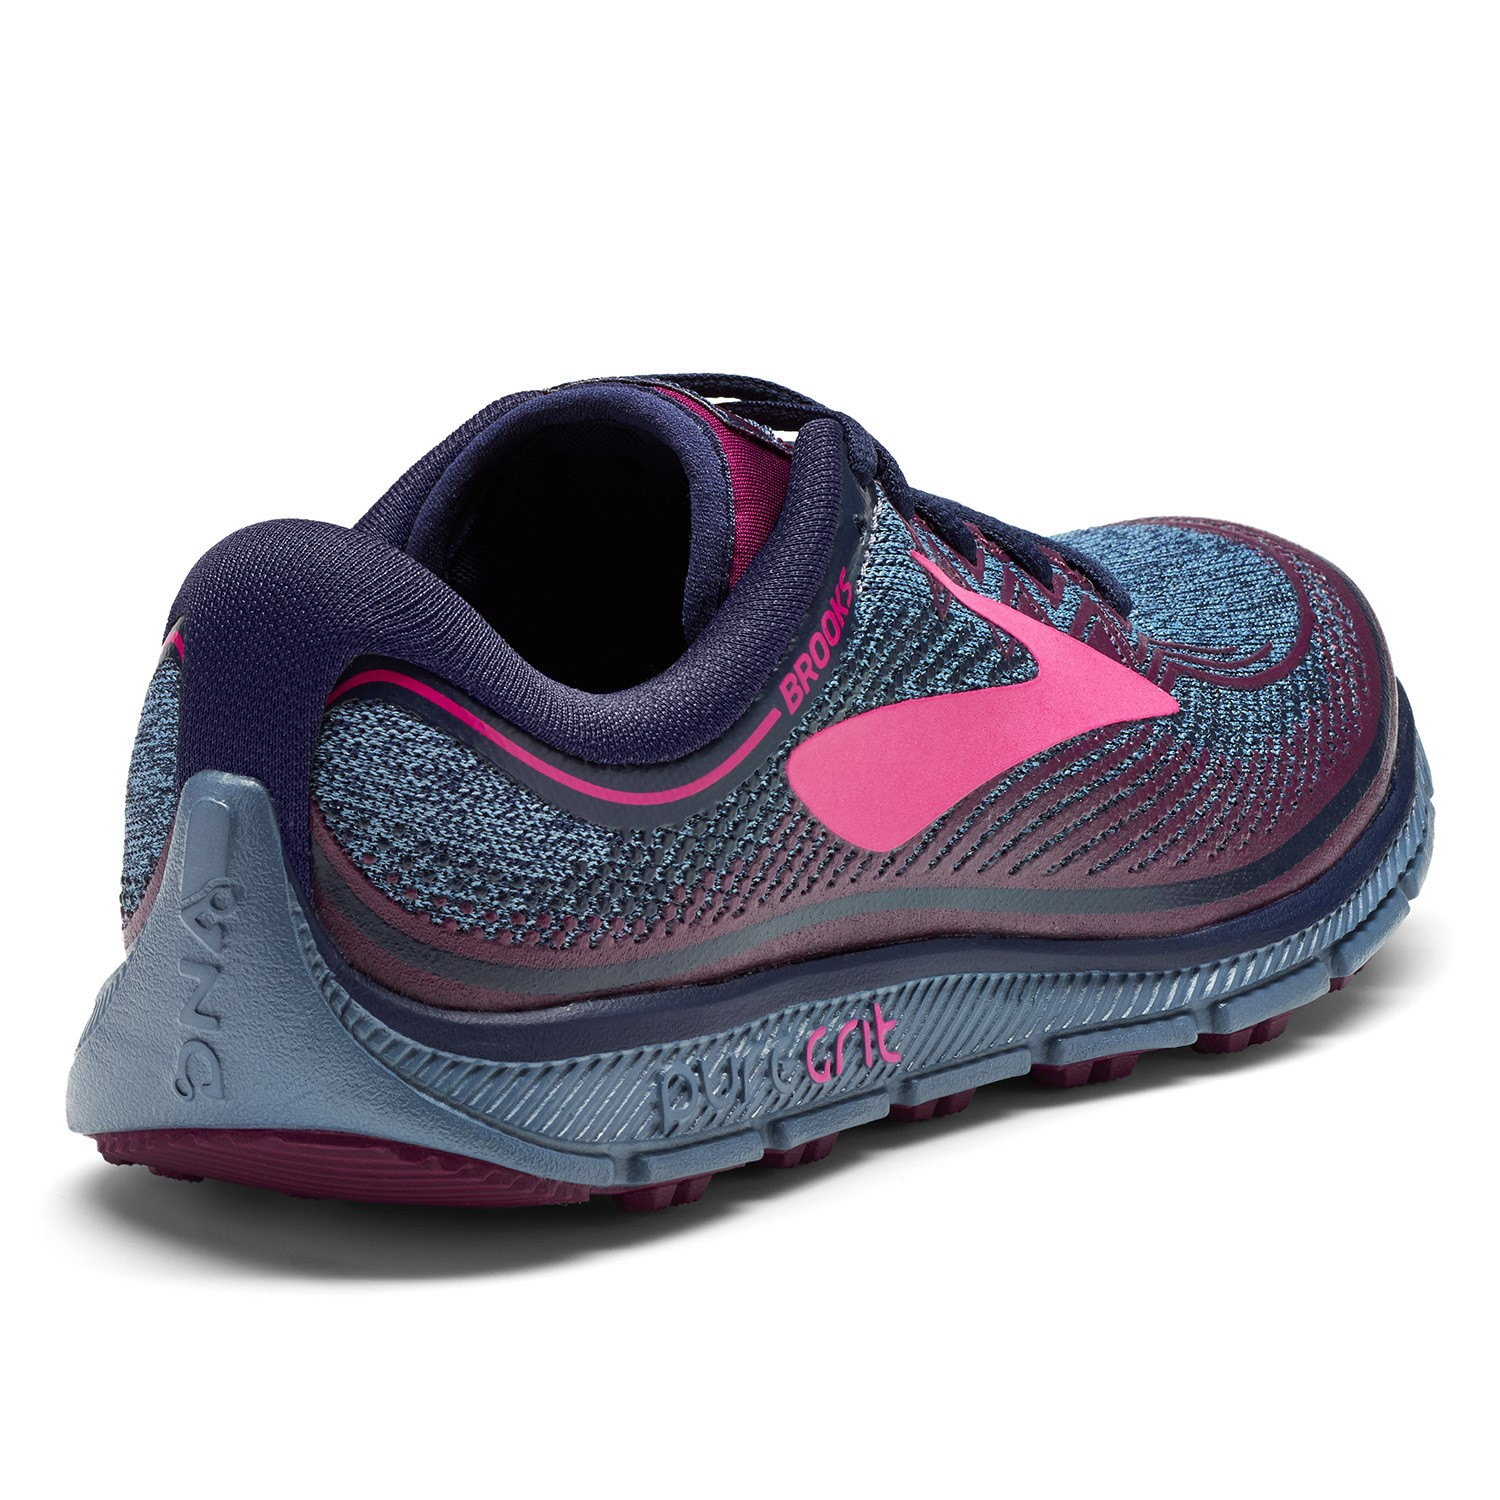 753c6deb8eb Brooks Pure Grit 6 - Womens Trail Running Shoes - Navy Plum Pink ...